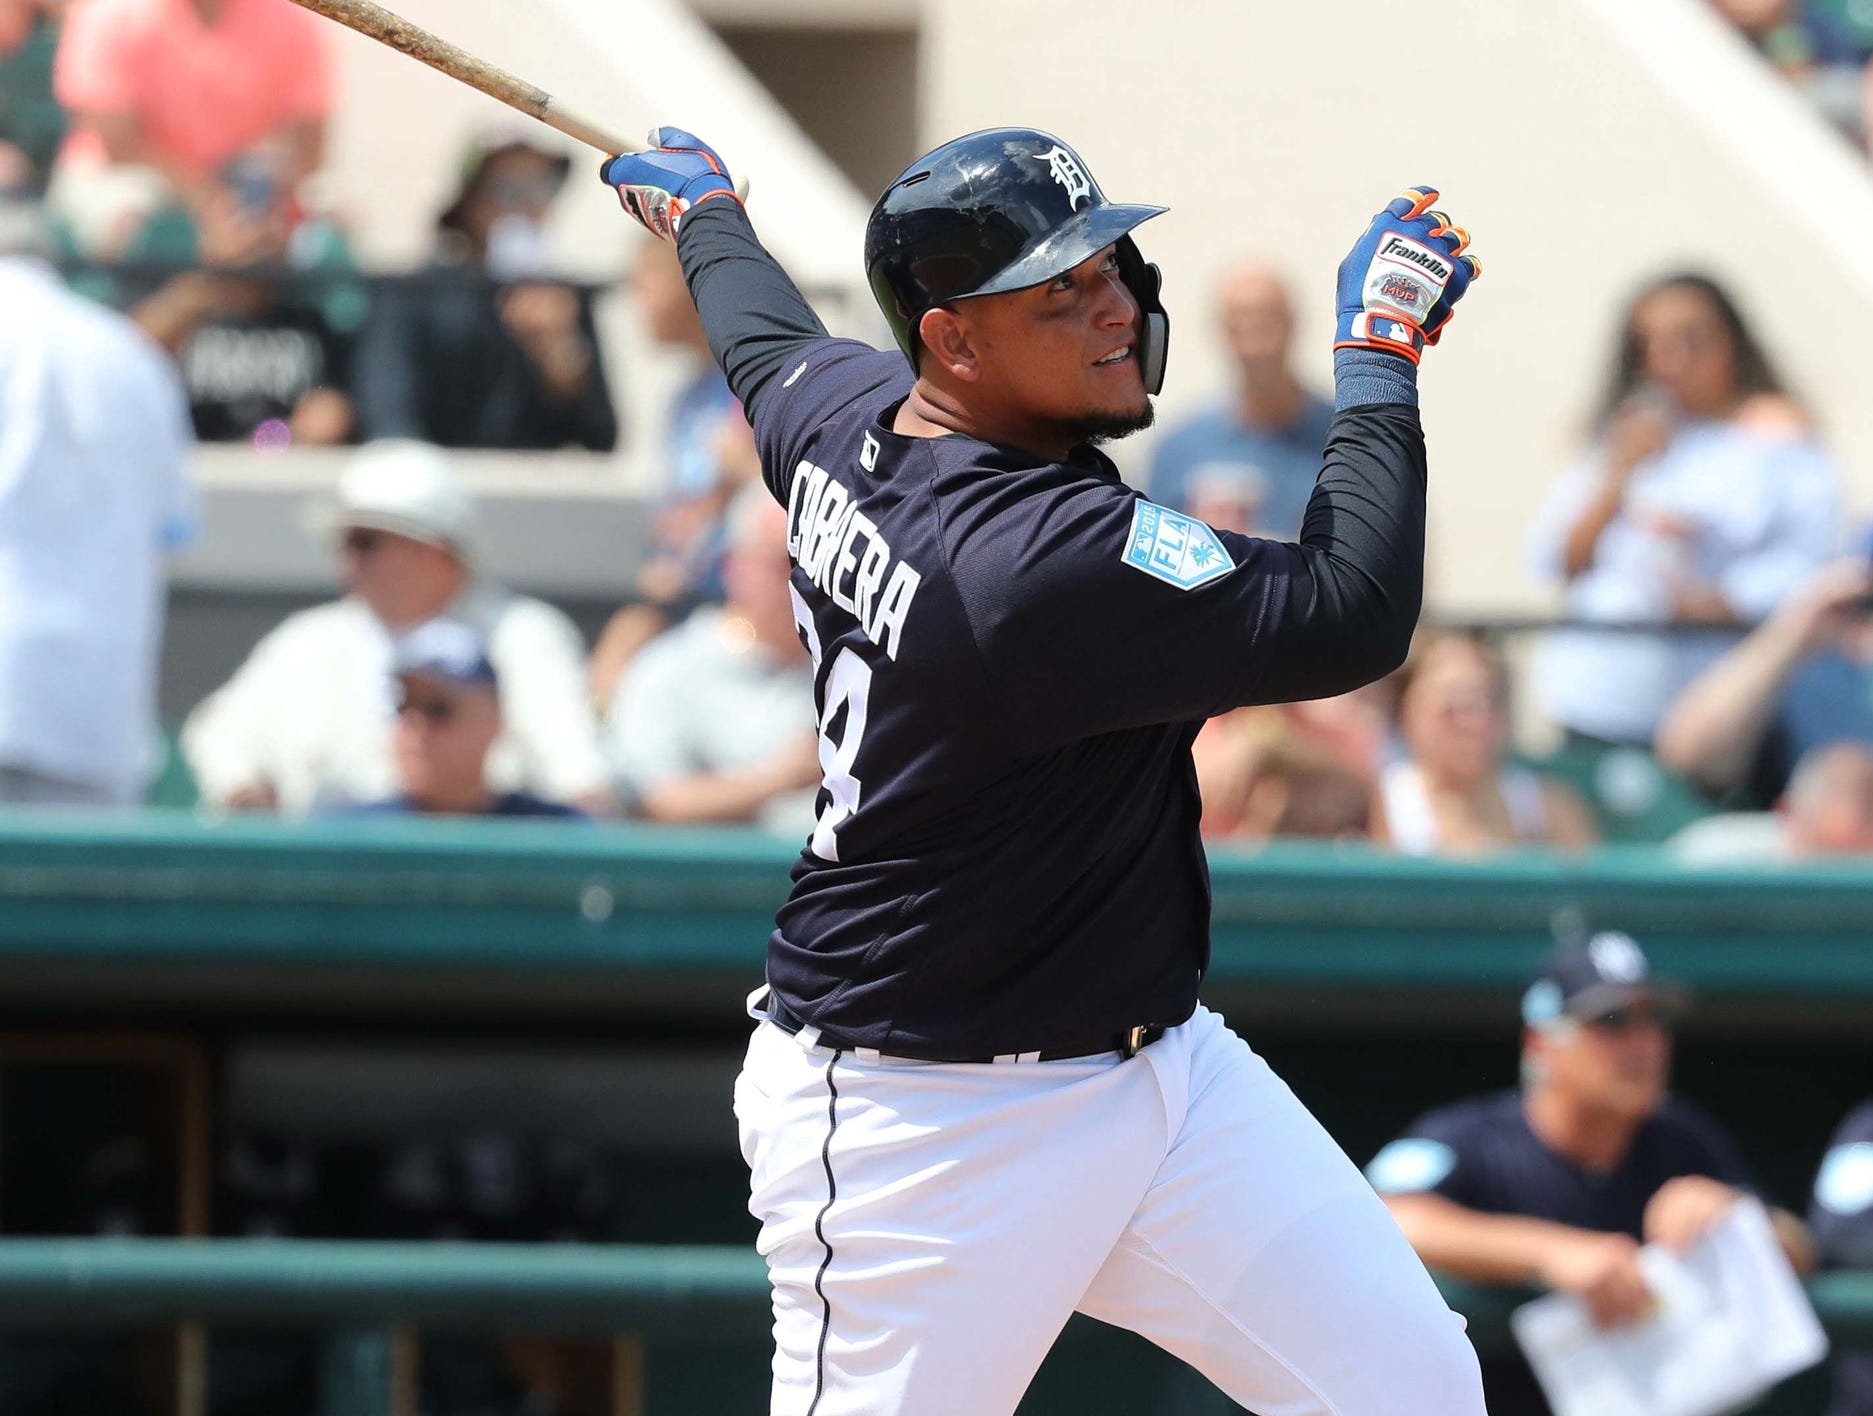 Tigers designated hitter Miguel Cabrera hits a home run during the second inning in the exhibition tie against the New York Yankees on Sunday, March 10, 2019, at Joker Marchant Stadium.